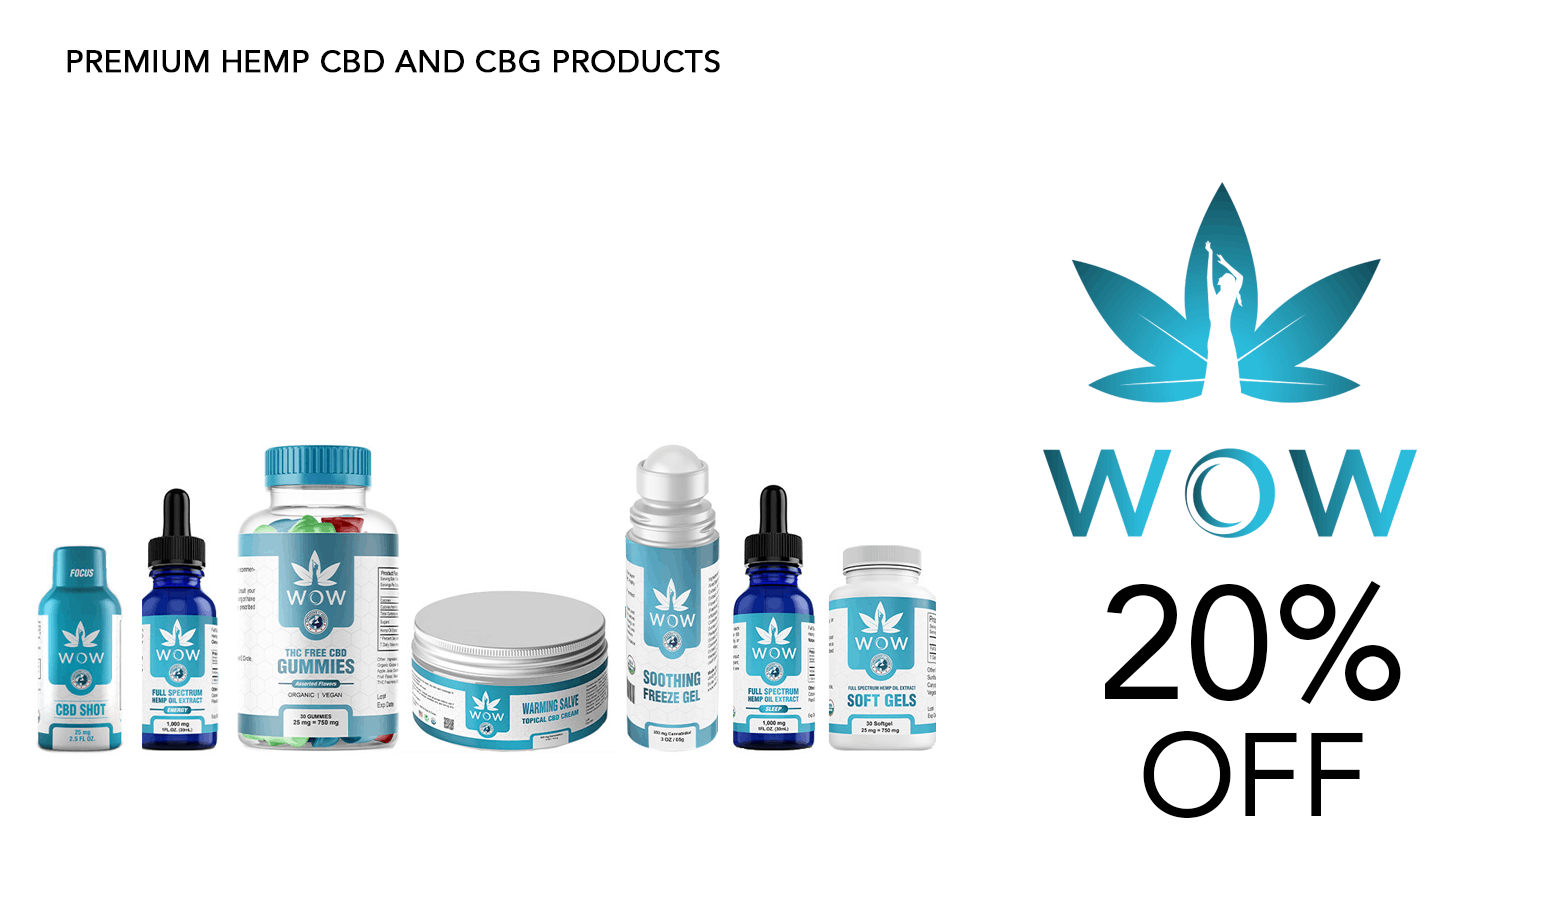 WOW Organics CBD Coupon Code Website